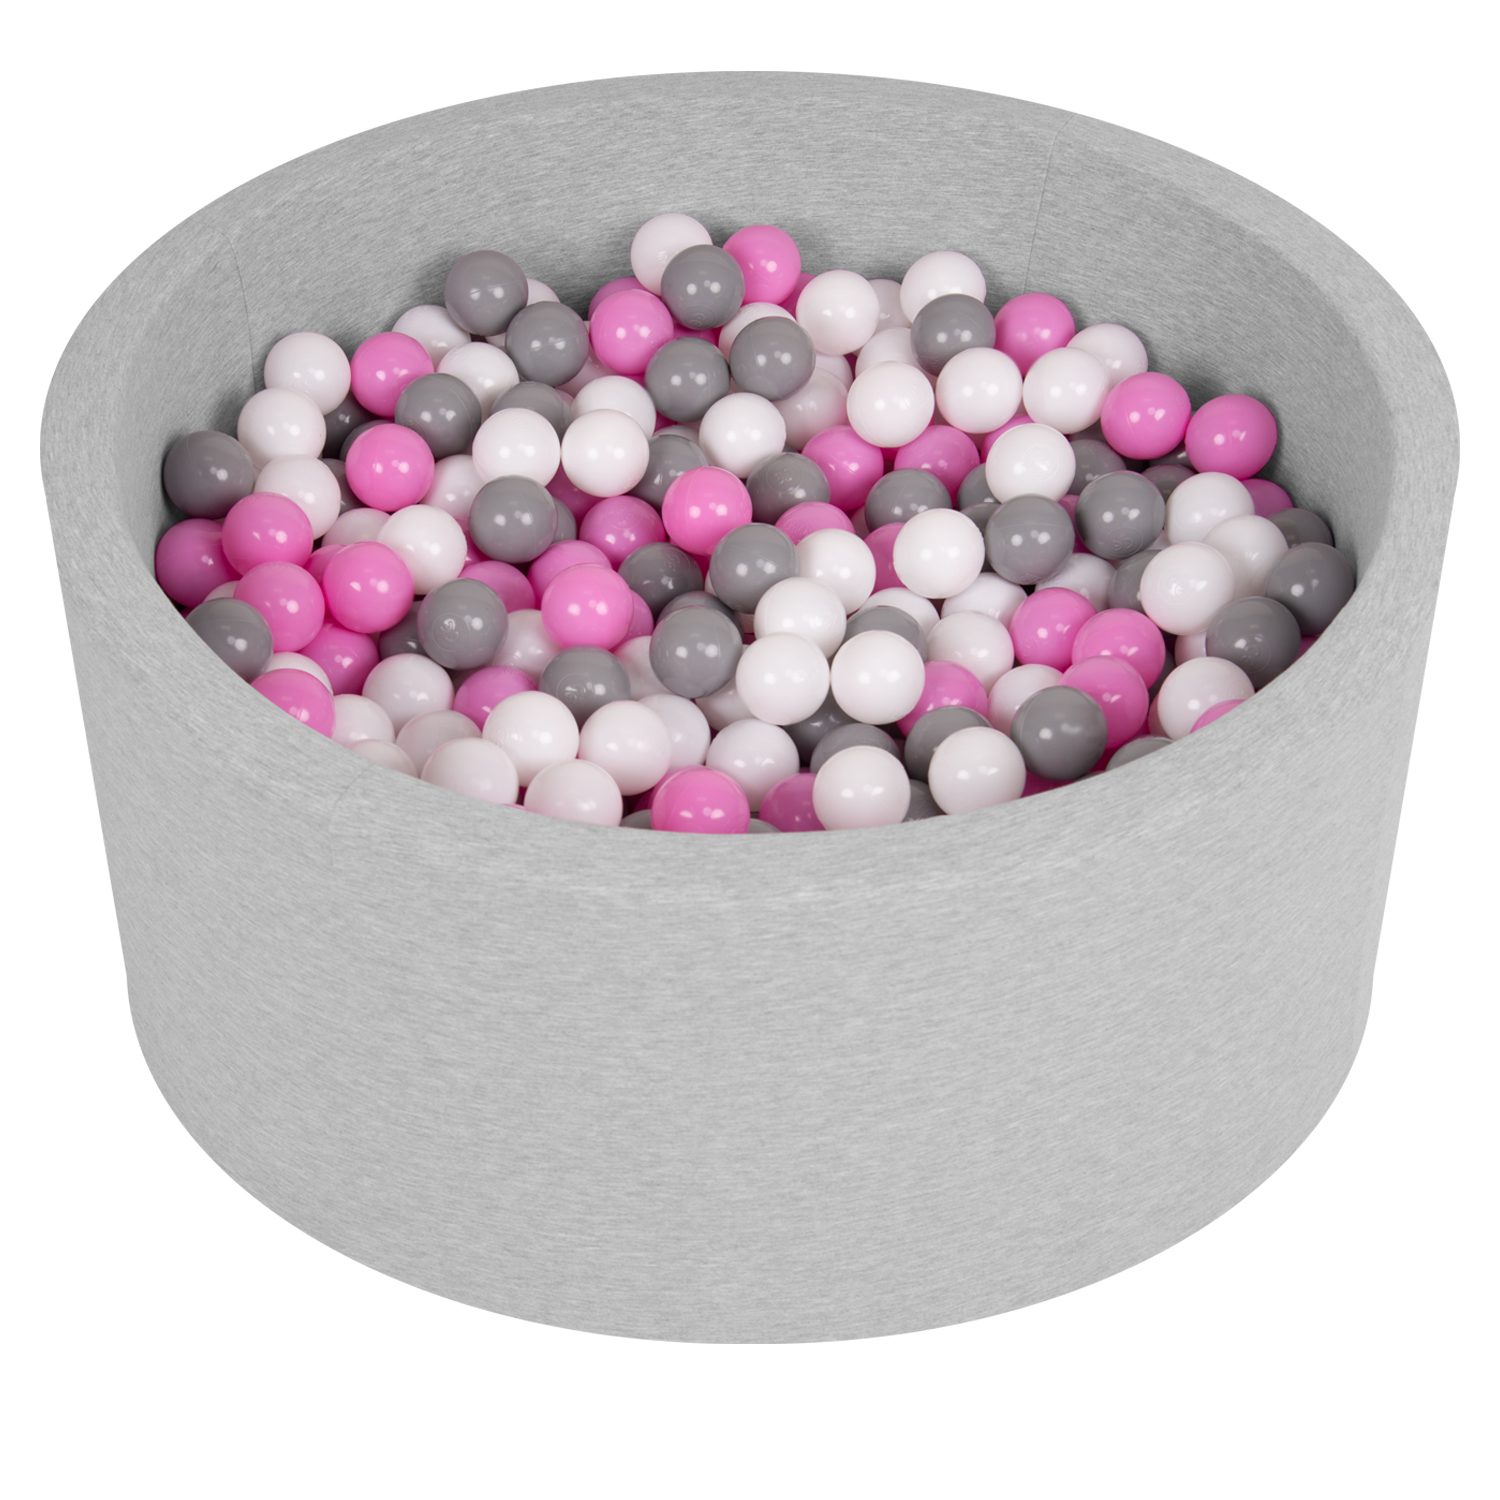 Selonis-Soft-Ball-Pit-Pool-Round-90x30cm-for-Baby-Toddler-200-Balls-Foam miniatuur 4